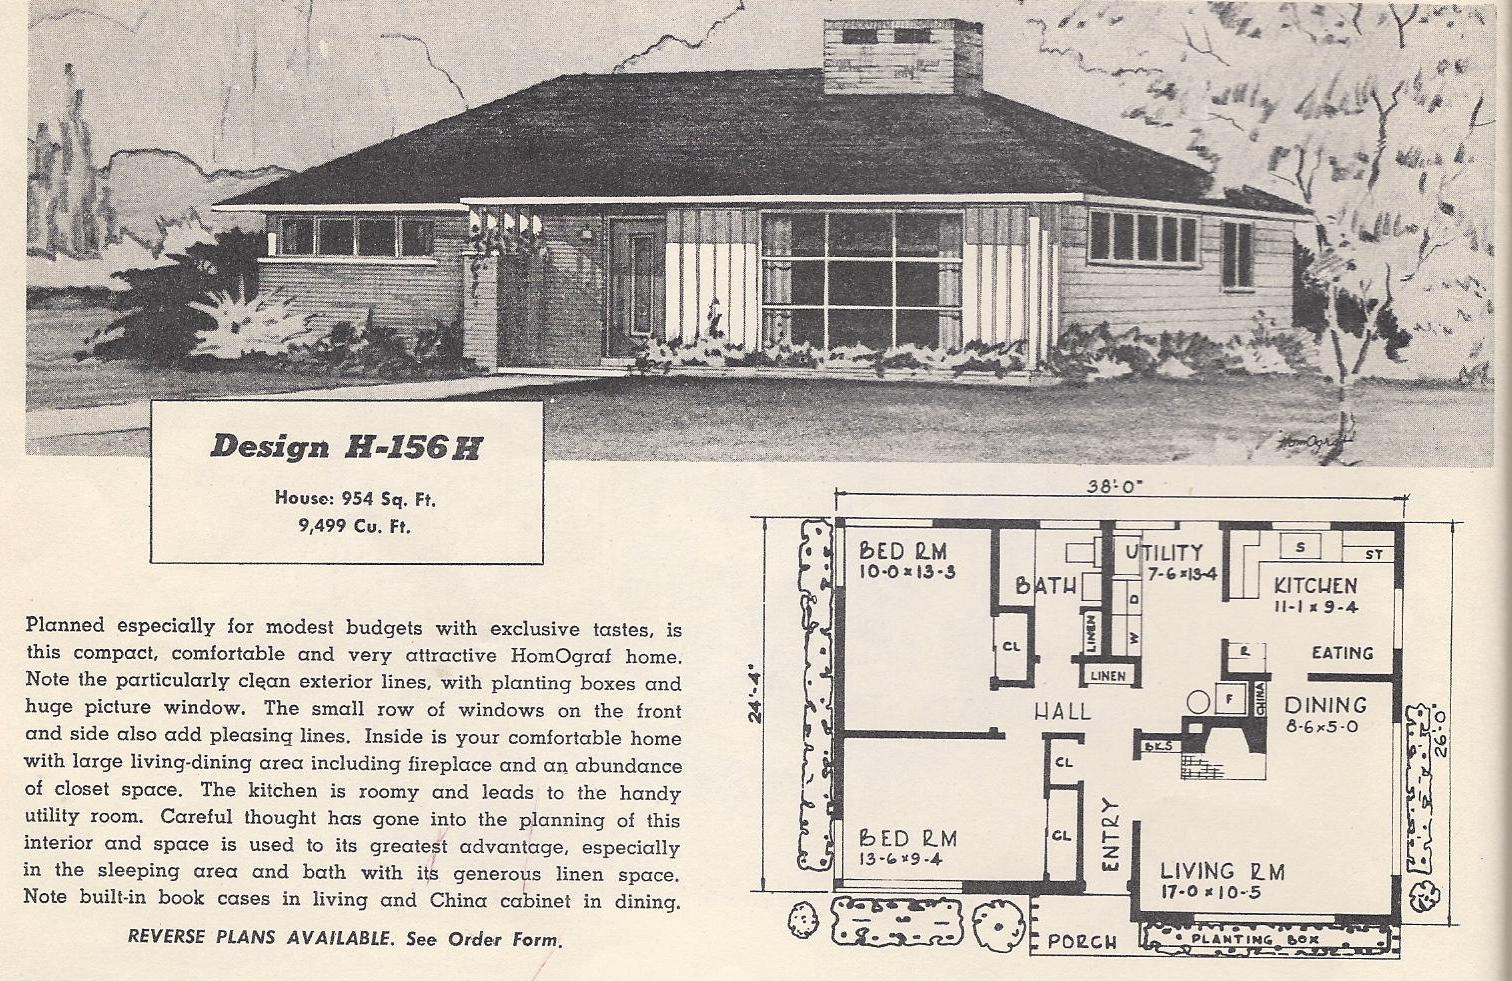 Vintage house plans 156h antique alter ego for Vintage home plans